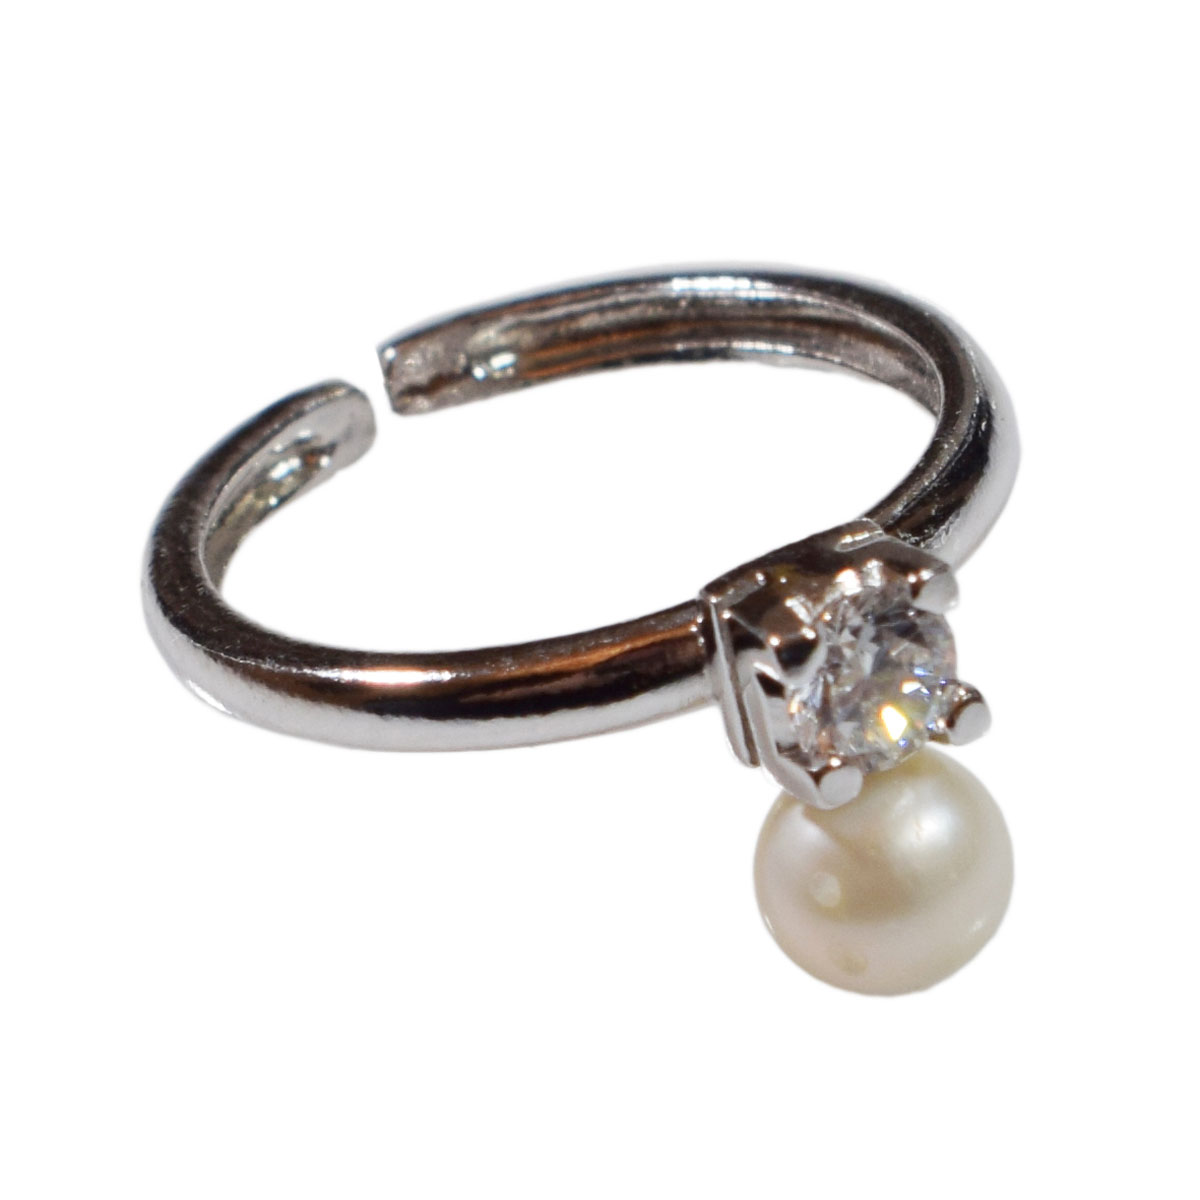 5745626b7850e Handmade sterling silver ring Eight-RG-00707 with rhodium plating and  semi-precious stones (pearls and cubic zirconia)